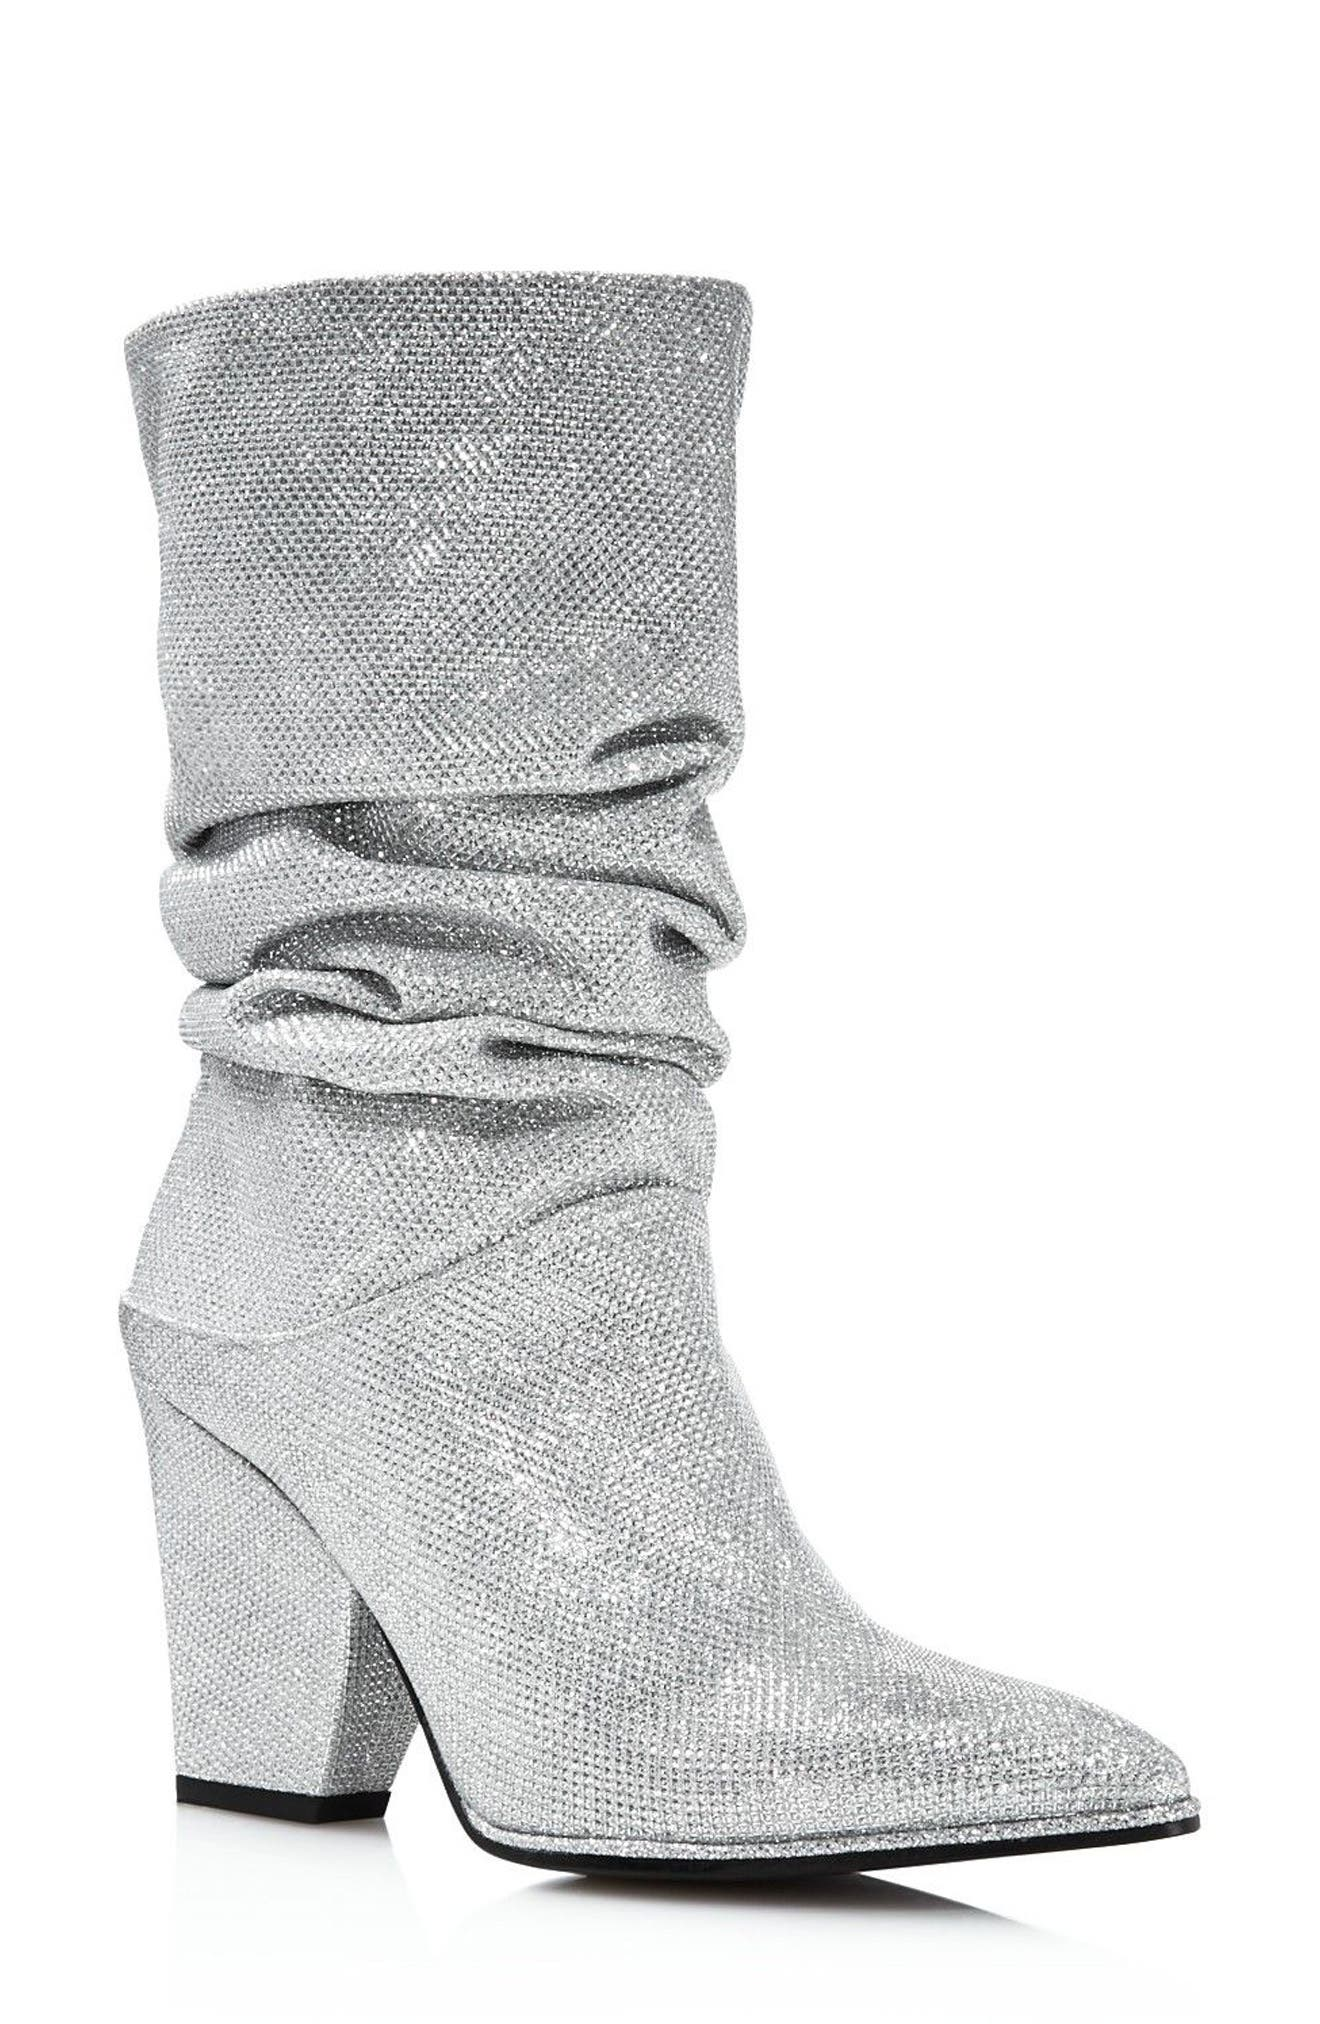 Alternate Image 1 Selected - Stuart Weitzman Crush Slouchy Bootie (Women)